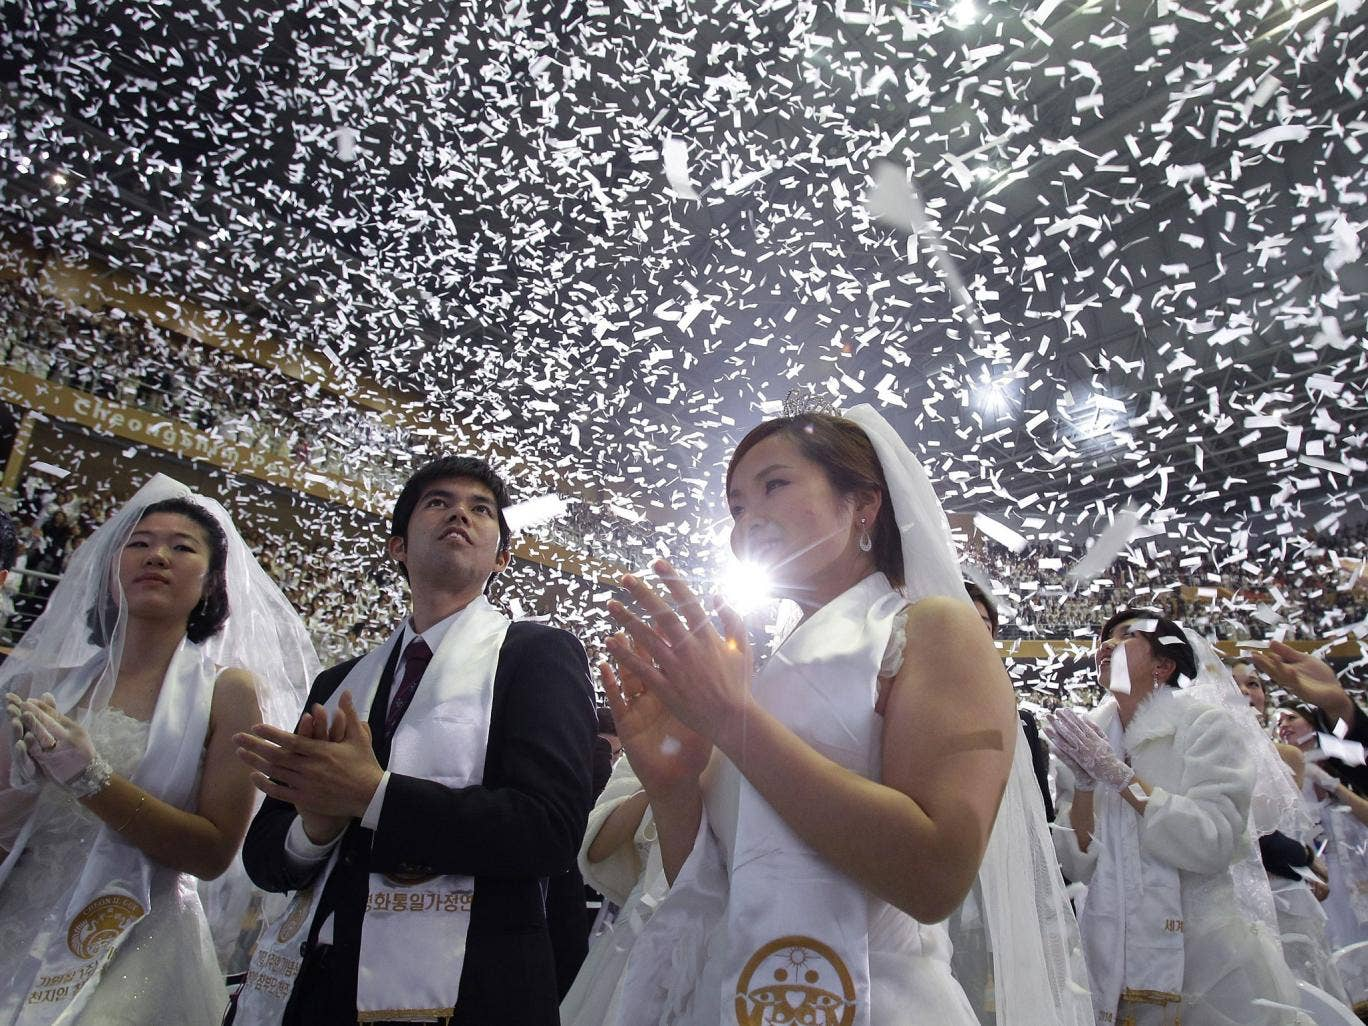 Couples take part in a mass wedding ceremony at Cheongshim Peace World Center in Gapyeong-gun